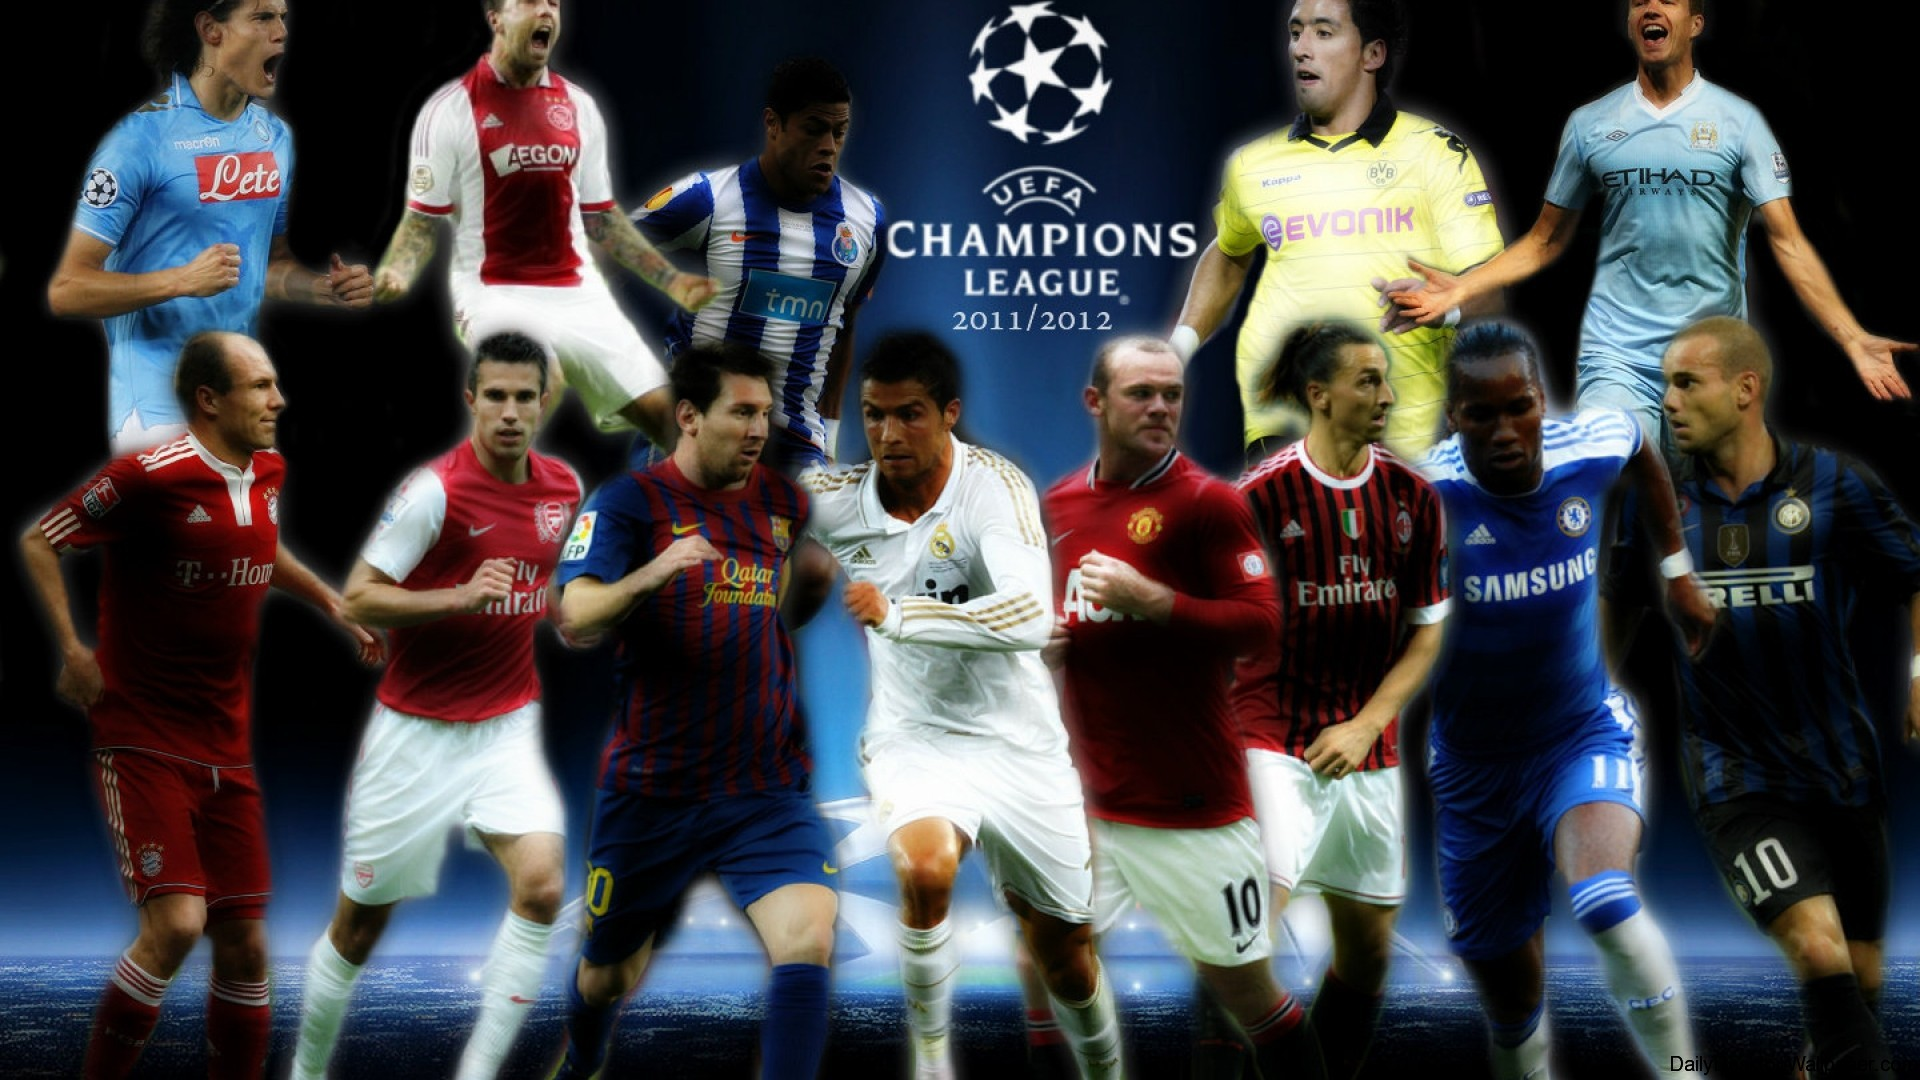 Champions League Wallpaper   HD Wallpapers 1920x1080